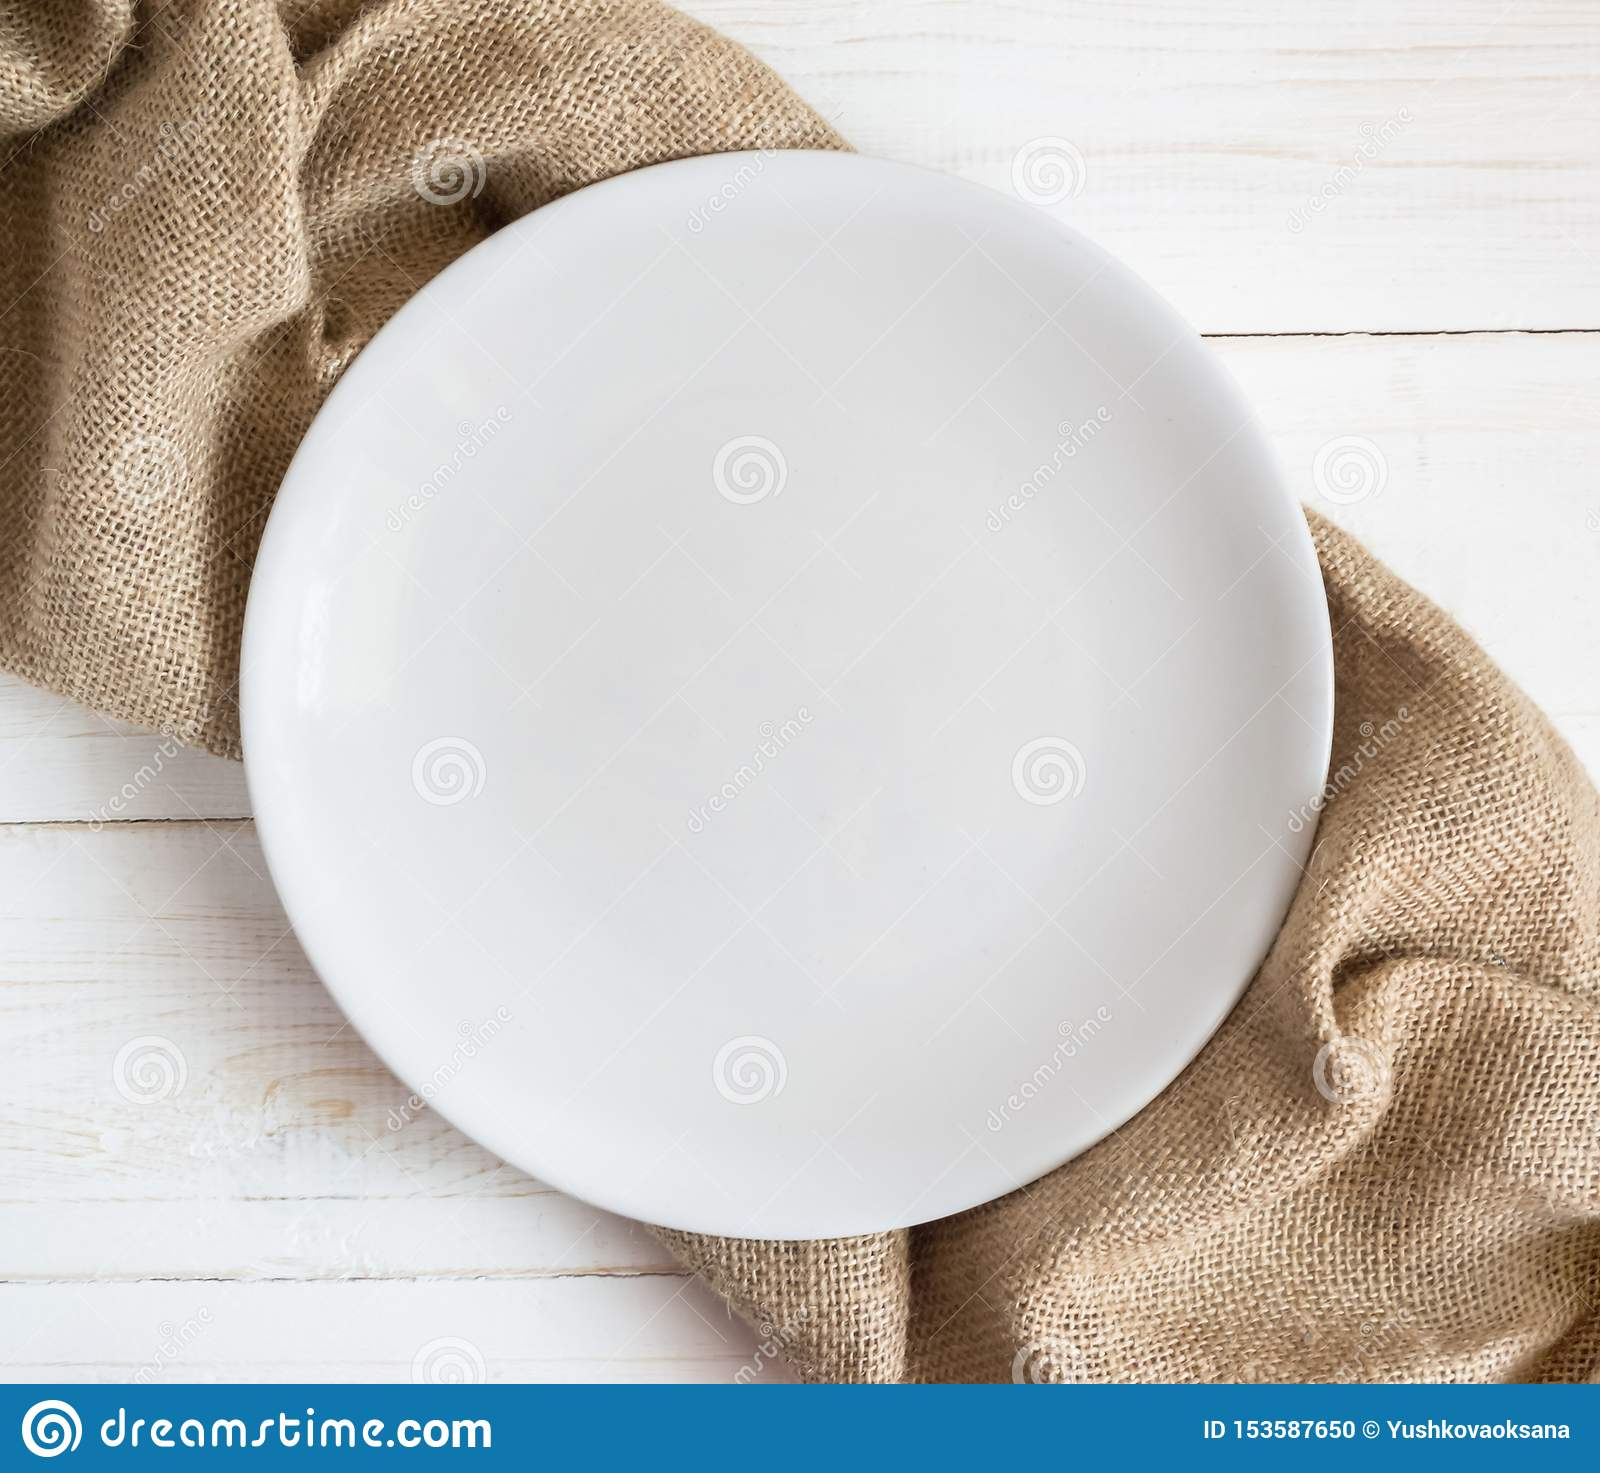 White empty plate on wooden table with brown napkin